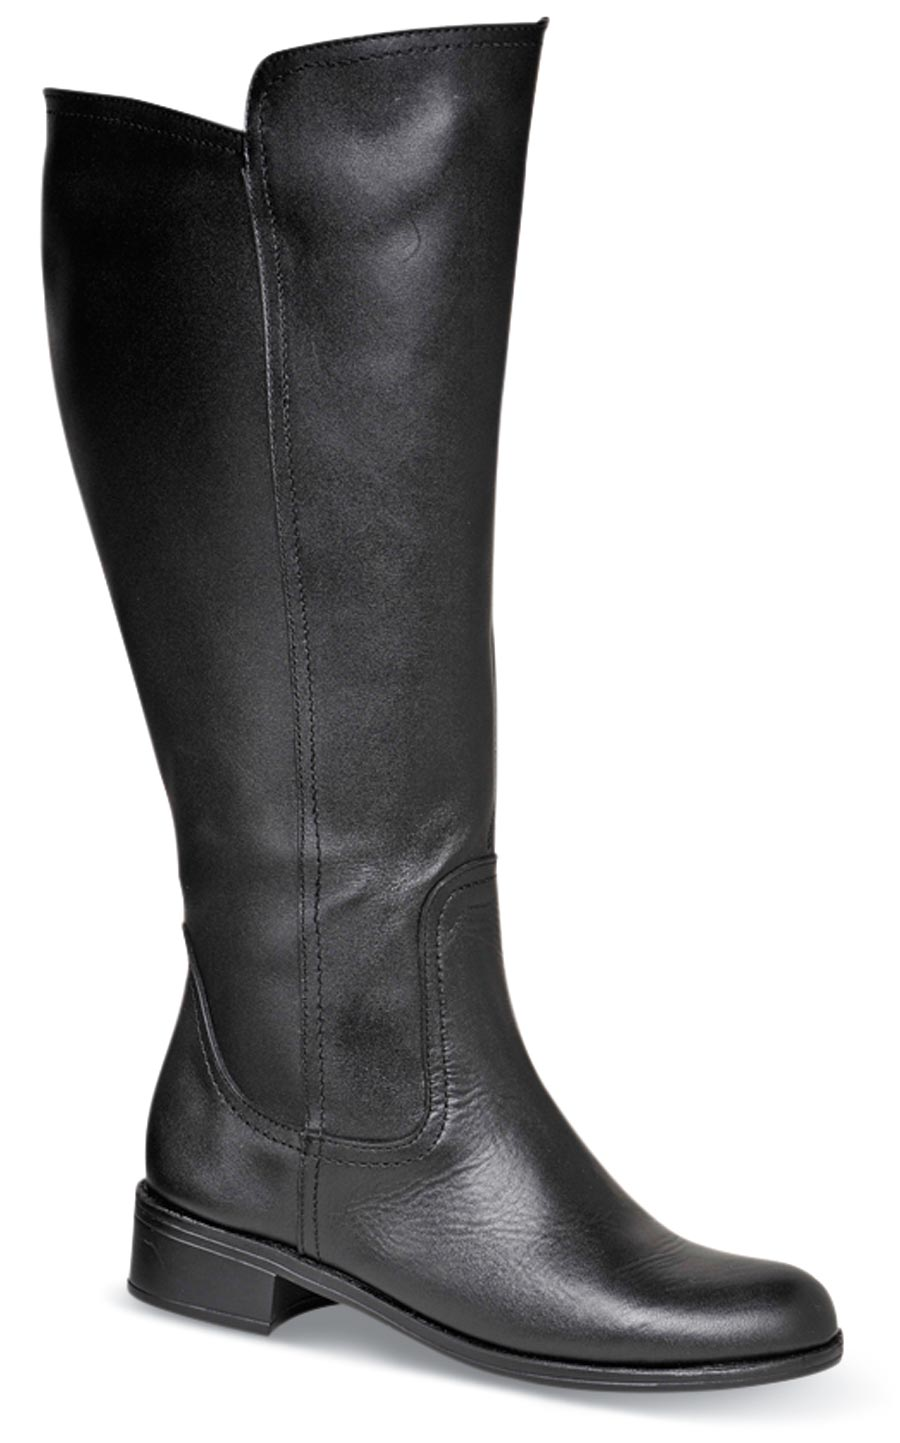 Samantha Black 15-inch Zip Boot